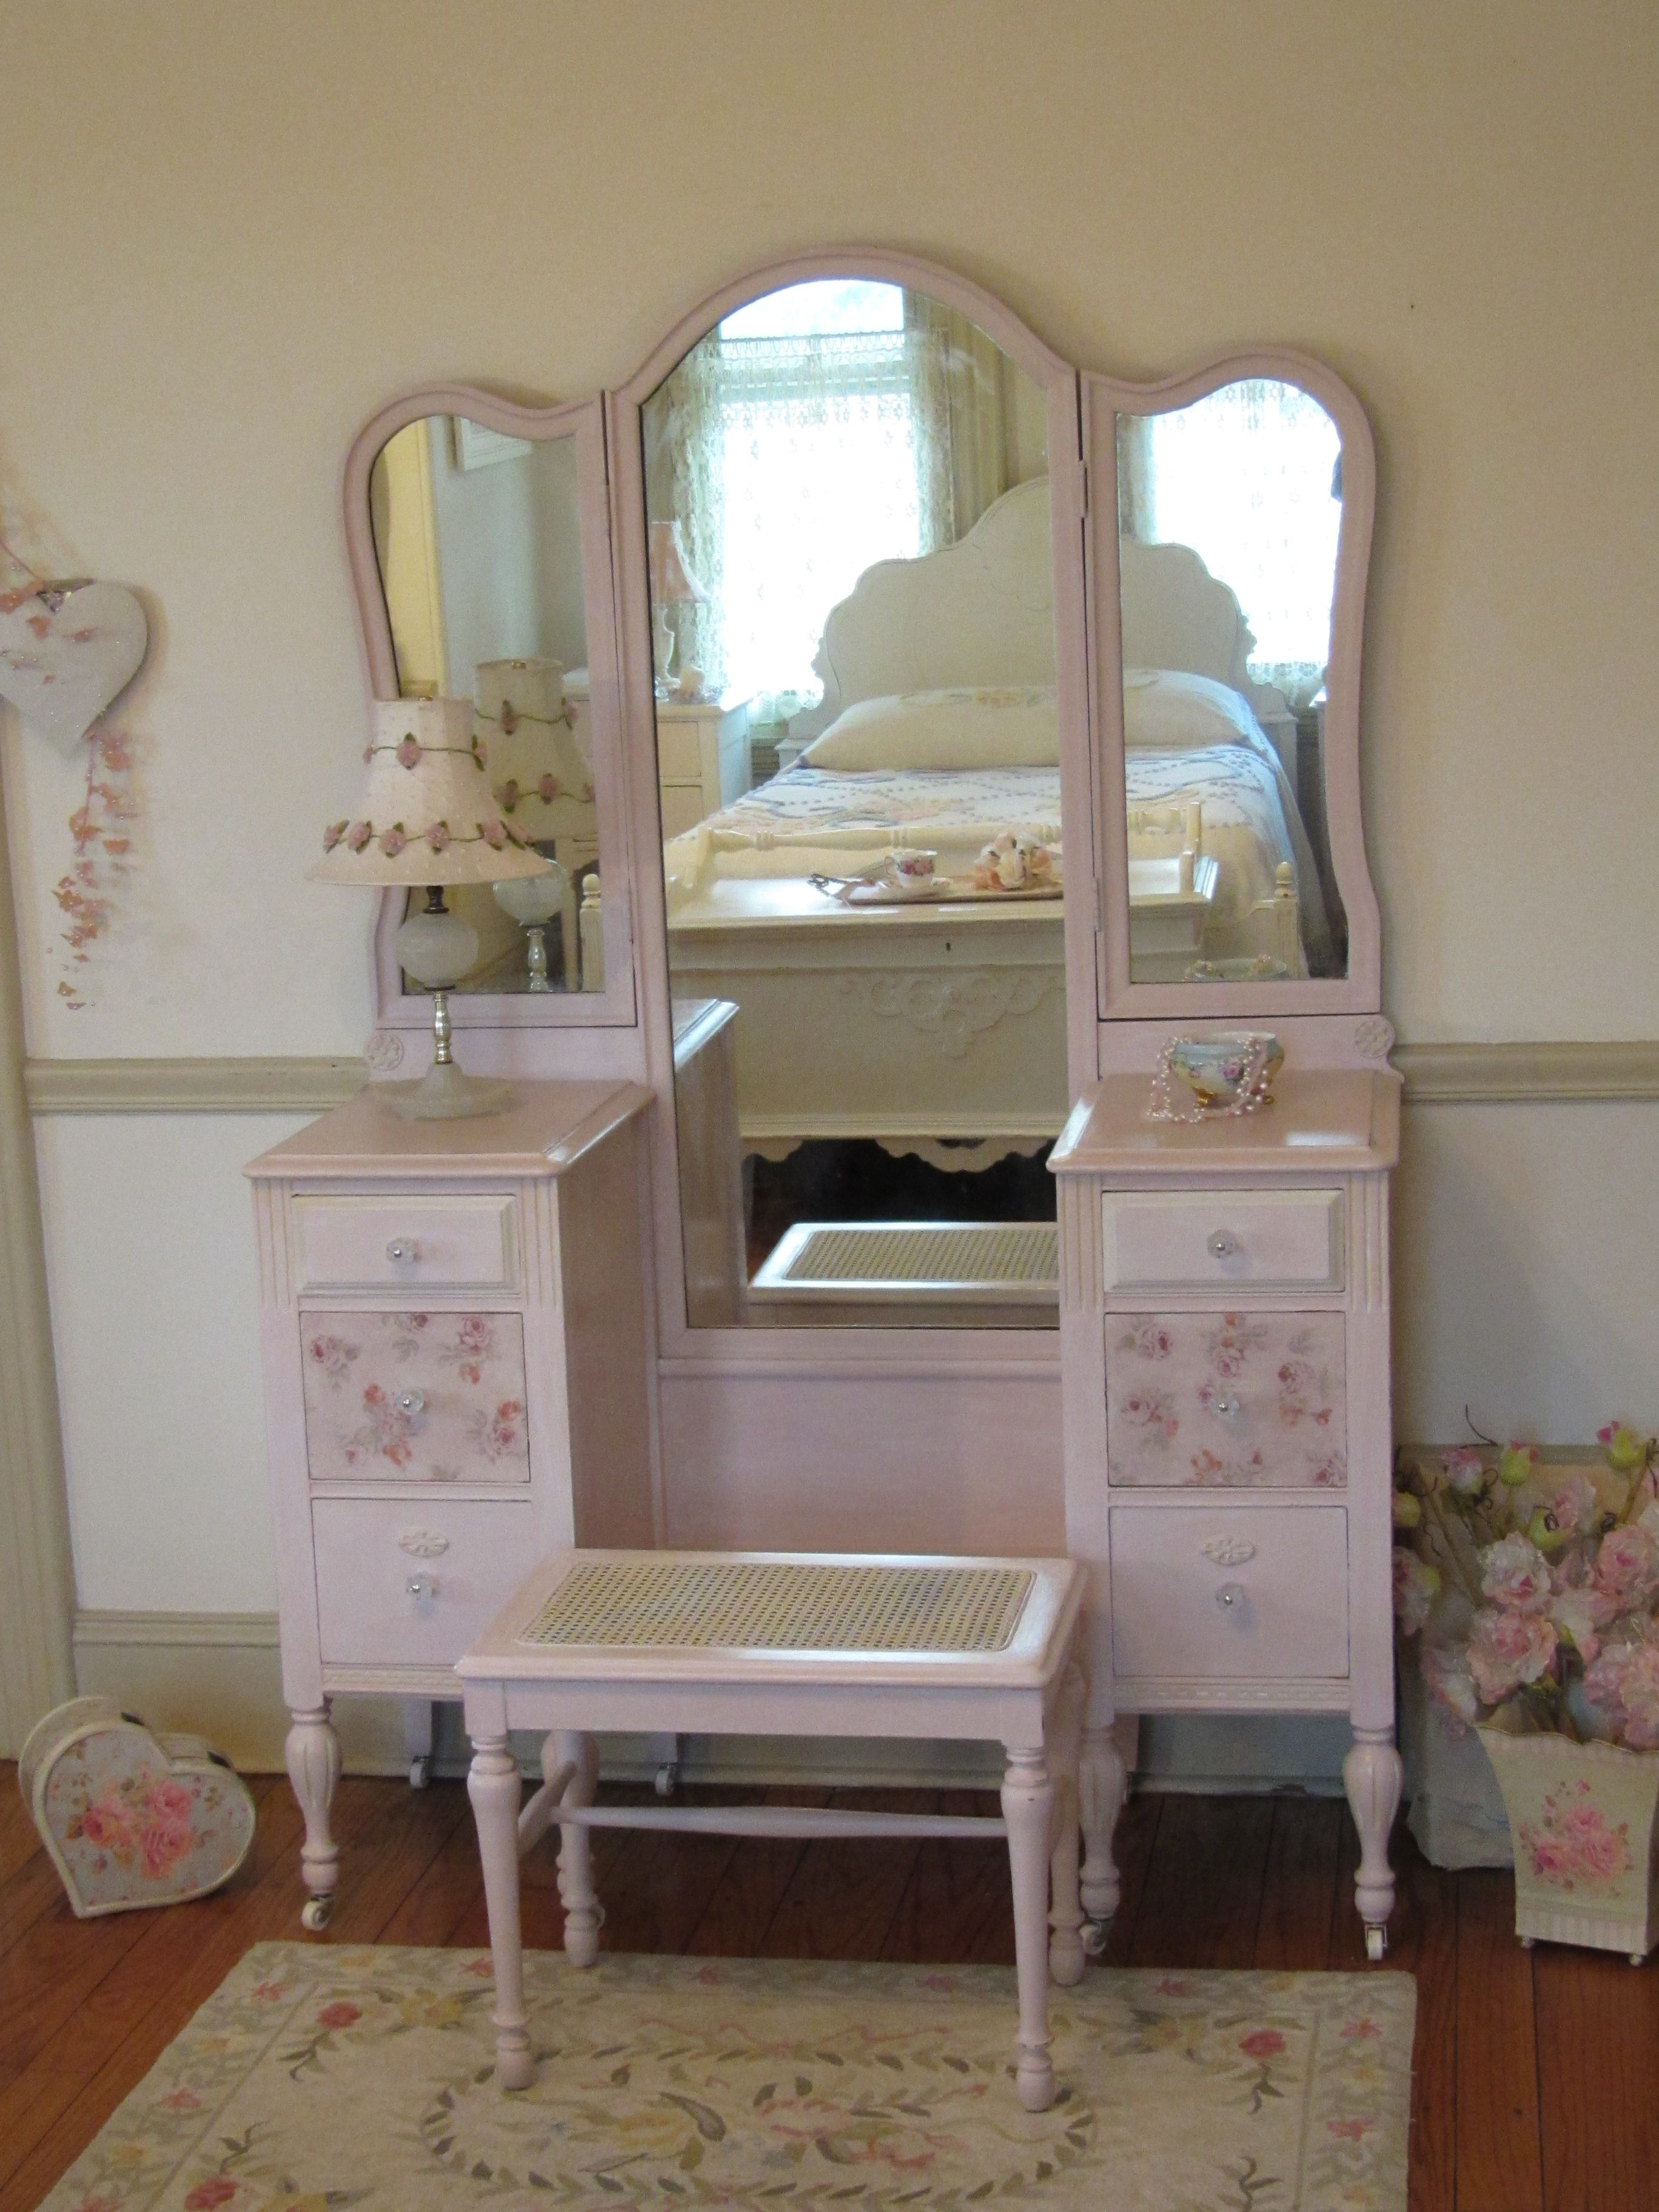 This darling vanity would look so pretty with a collection of china